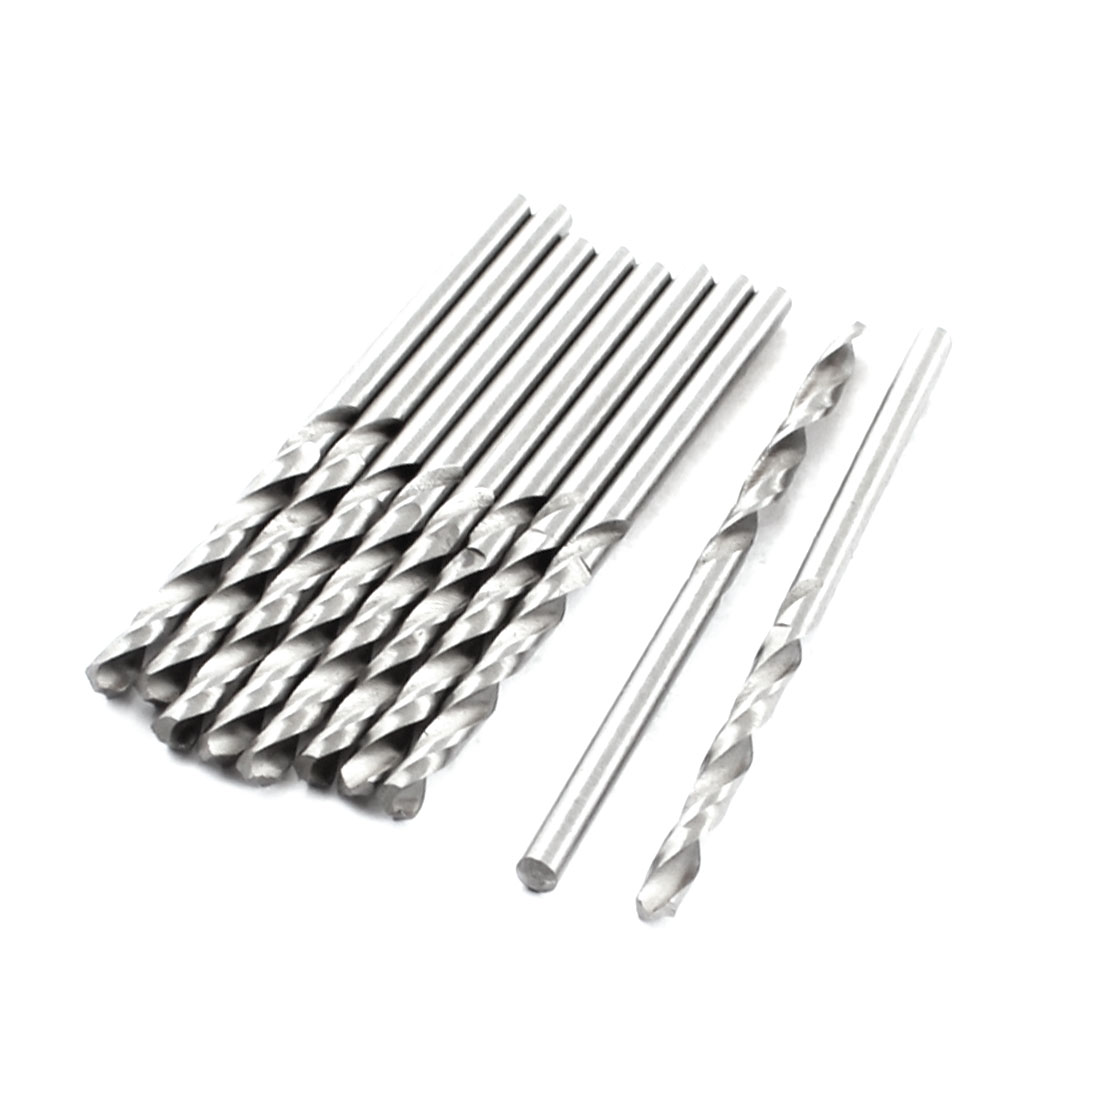 HSS Straight Shank 2.8mm Twist Head 69mm Long Drill Bit Silver Tone 10PCS